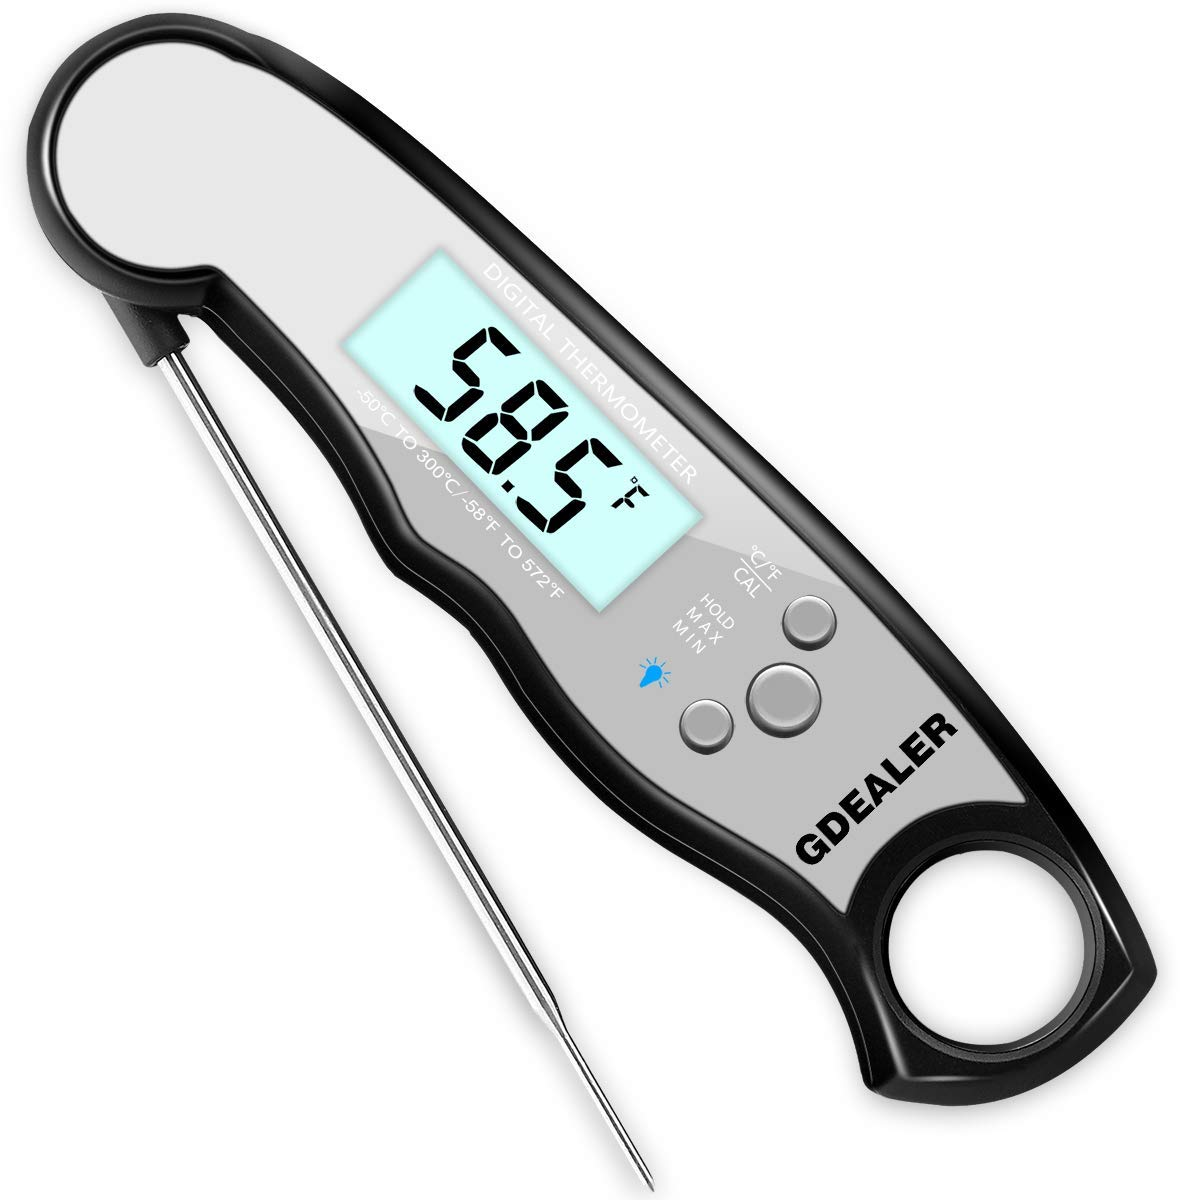 GDEALER Waterproof Meat Digital Thermometer